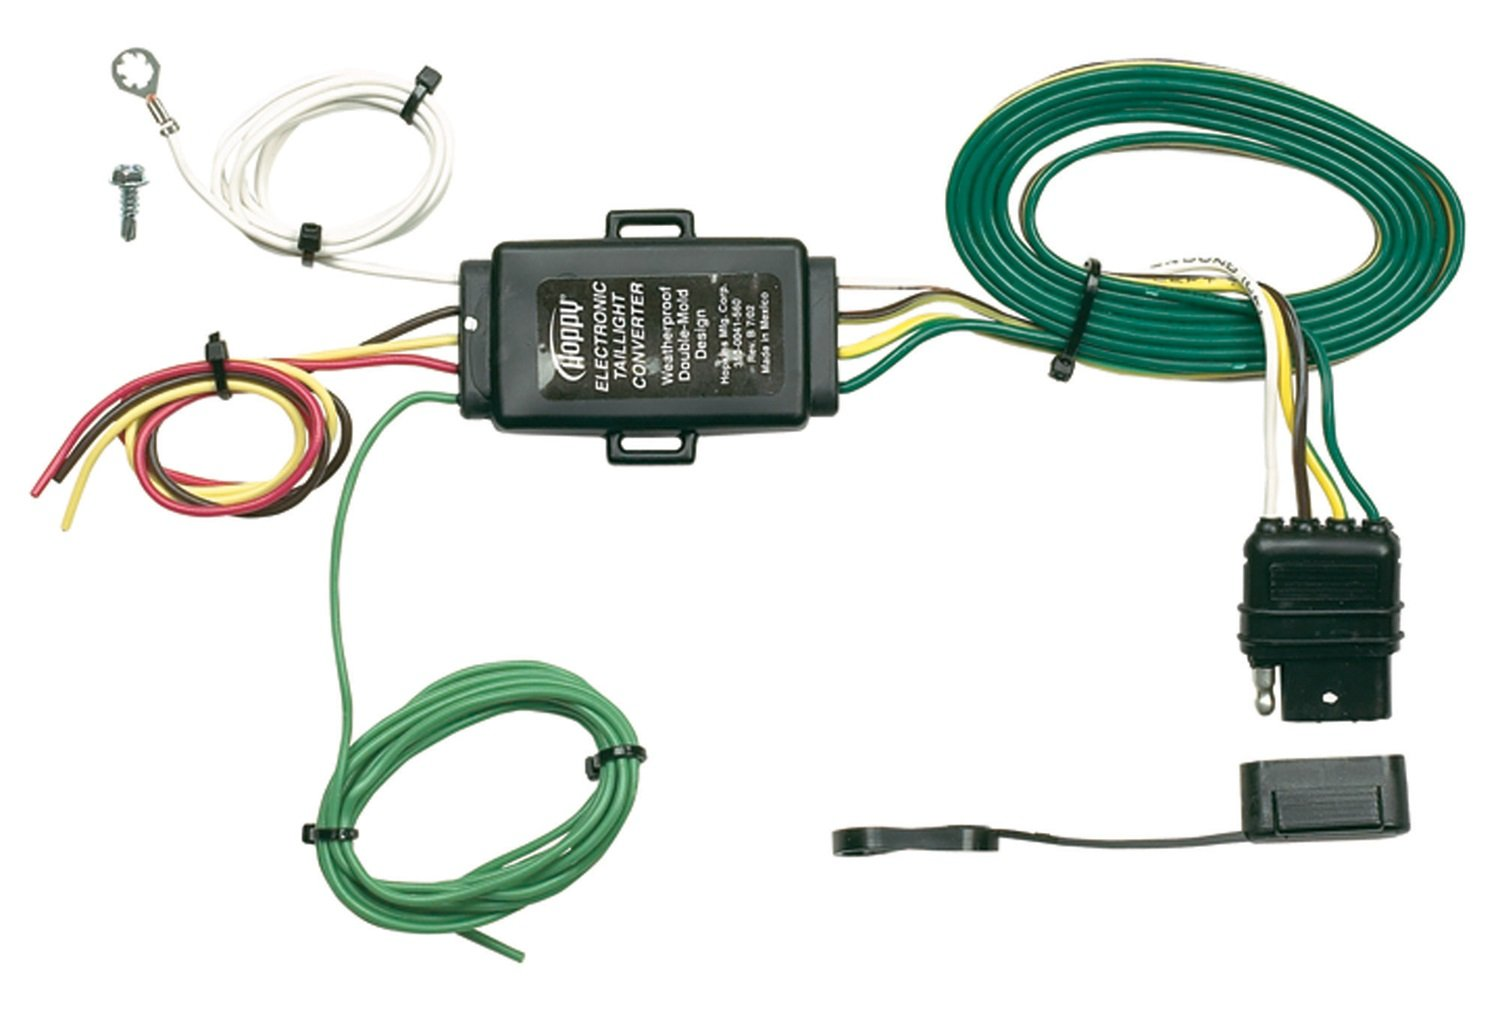 61WaHisQCLL._SL1500_ amazon com hopkins 48925 tail light converter with 4 wire flat Hopkins Trailer Wiring Kits at metegol.co